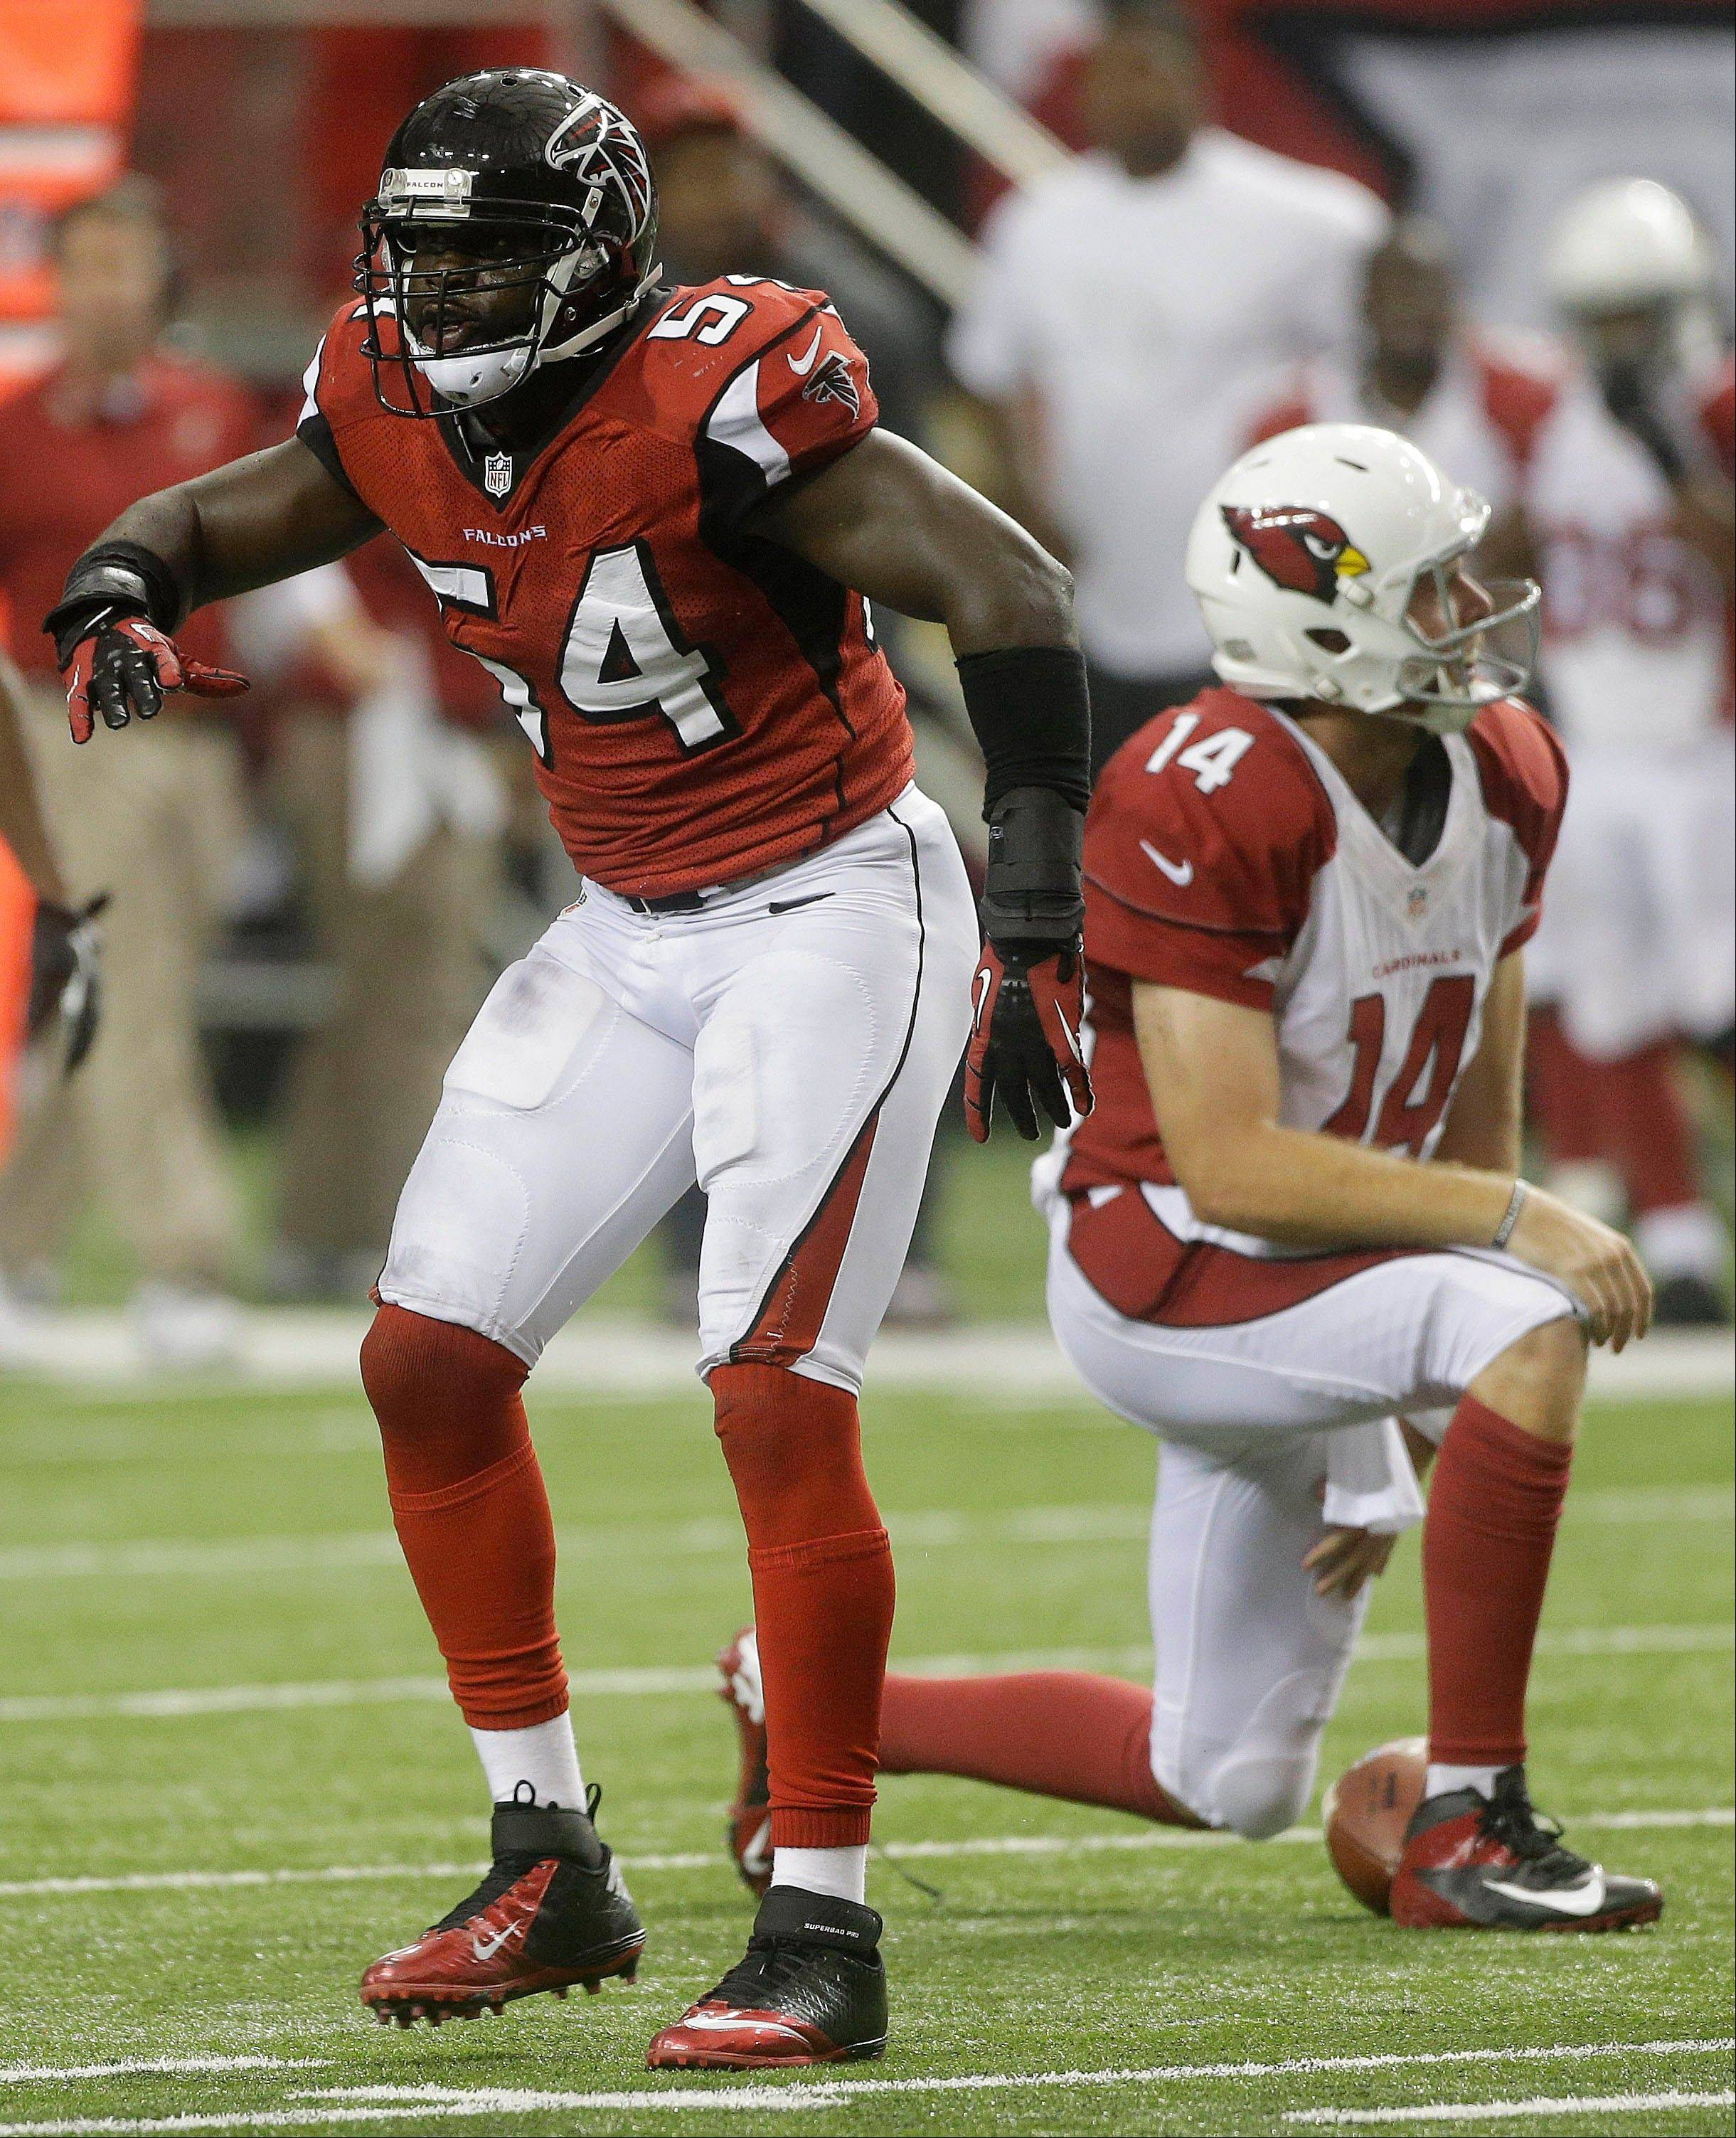 Atlanta Falcons outside linebacker Stephen Nicholas (54) sacks Arizona Cardinals quarterback Ryan Lindley (14) during the second half Sunday in Atlanta.